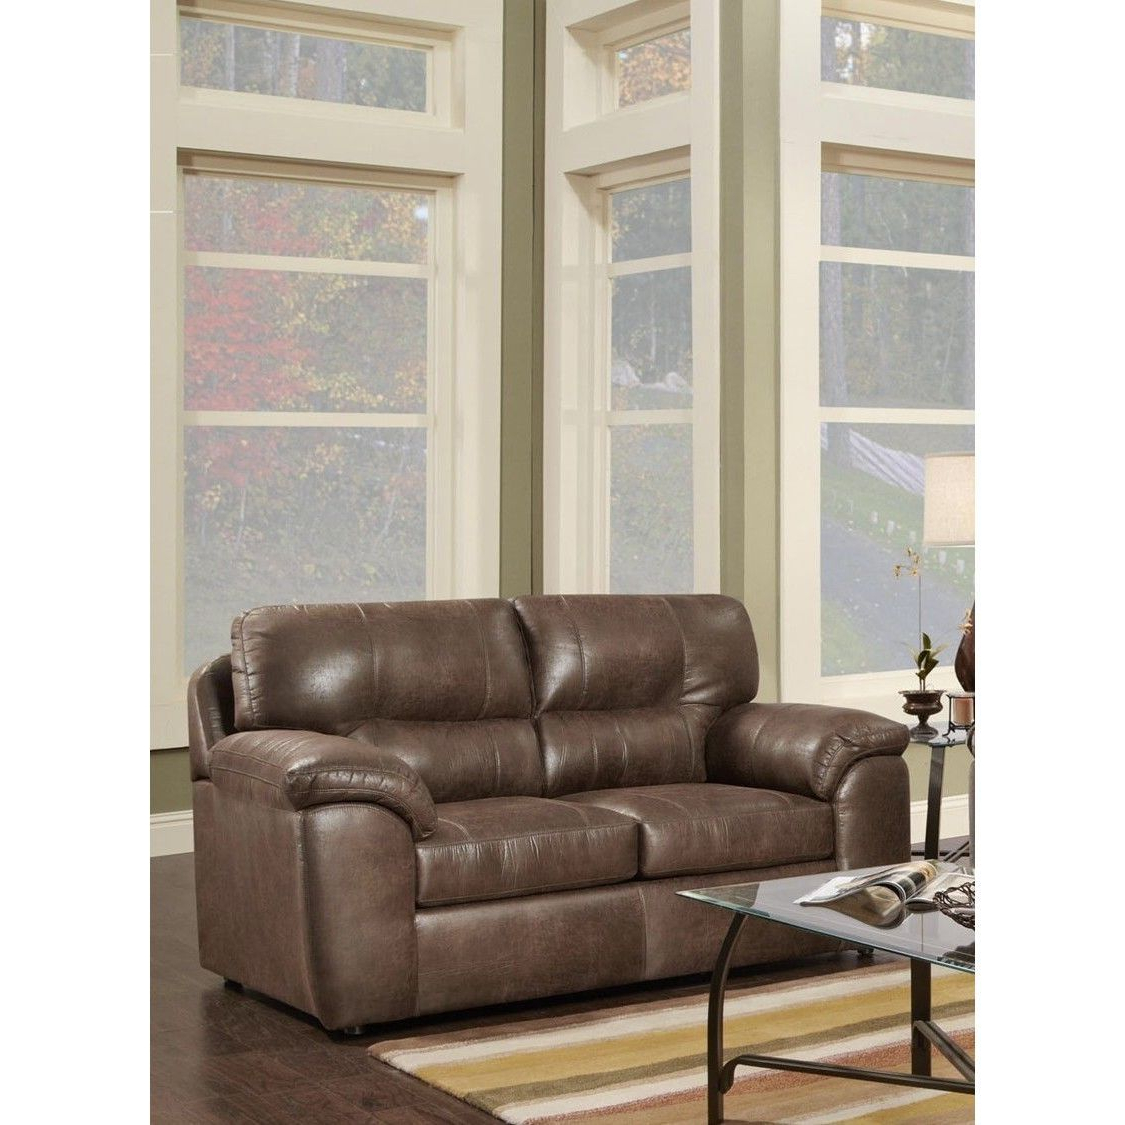 Outlet sofas Online Whdr Chance Sable Loveseat Chance Loveseat Brown Polyester Blend